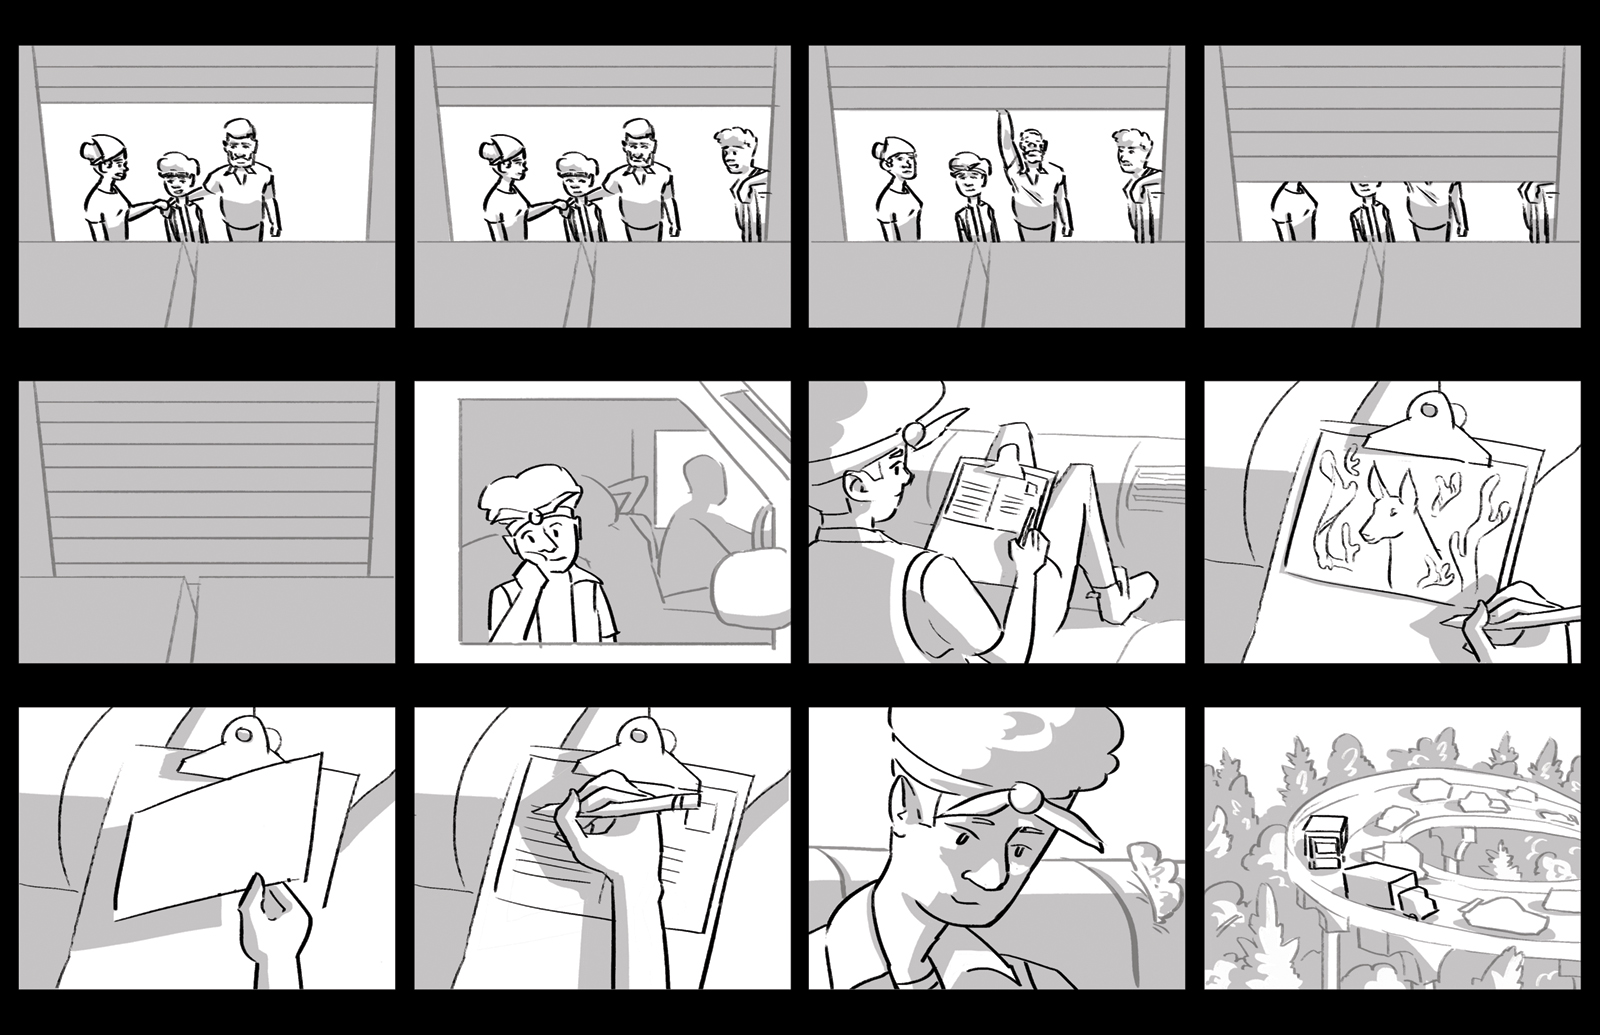 Fifteenth storyboard. Denny's family are ready to move. Denny writes a postcard to their friend with a drawing of the deer.